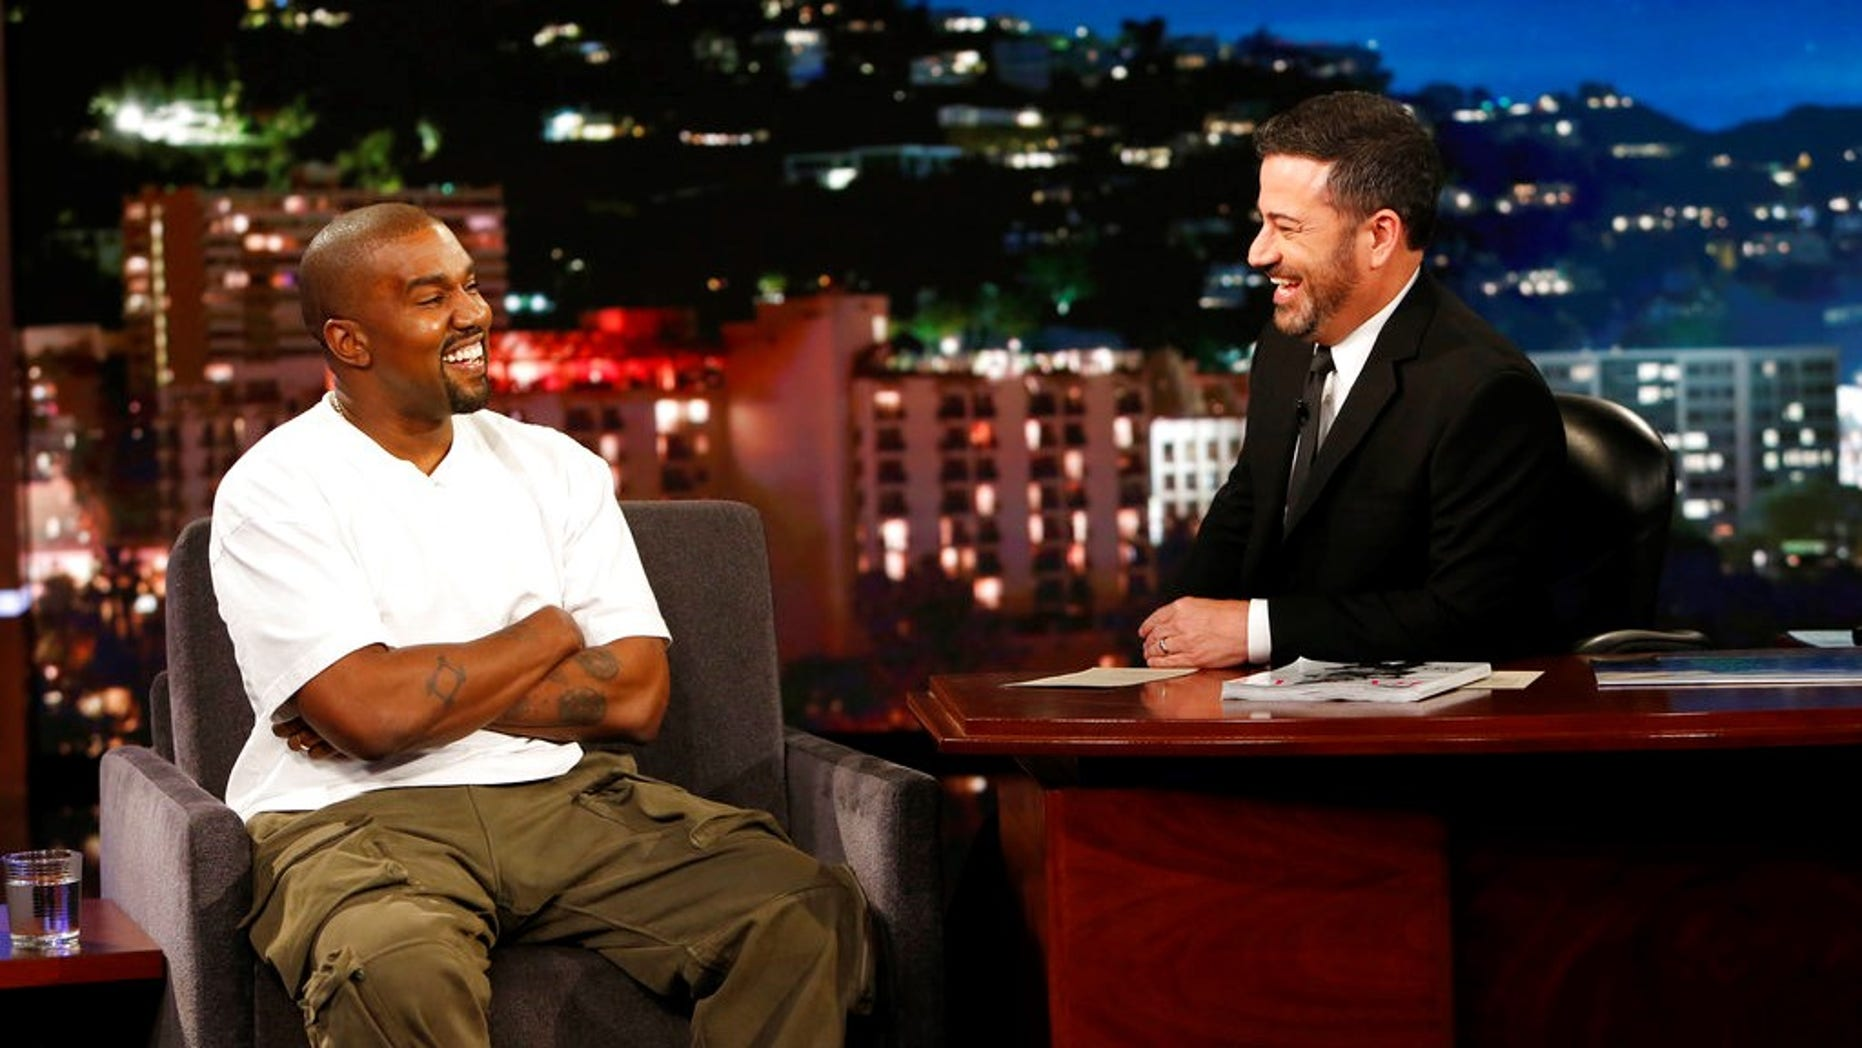 Kanye West explained the long pause he took when host Jimmy Kimmel asked him why the rapper thought President Trump cared about black people.